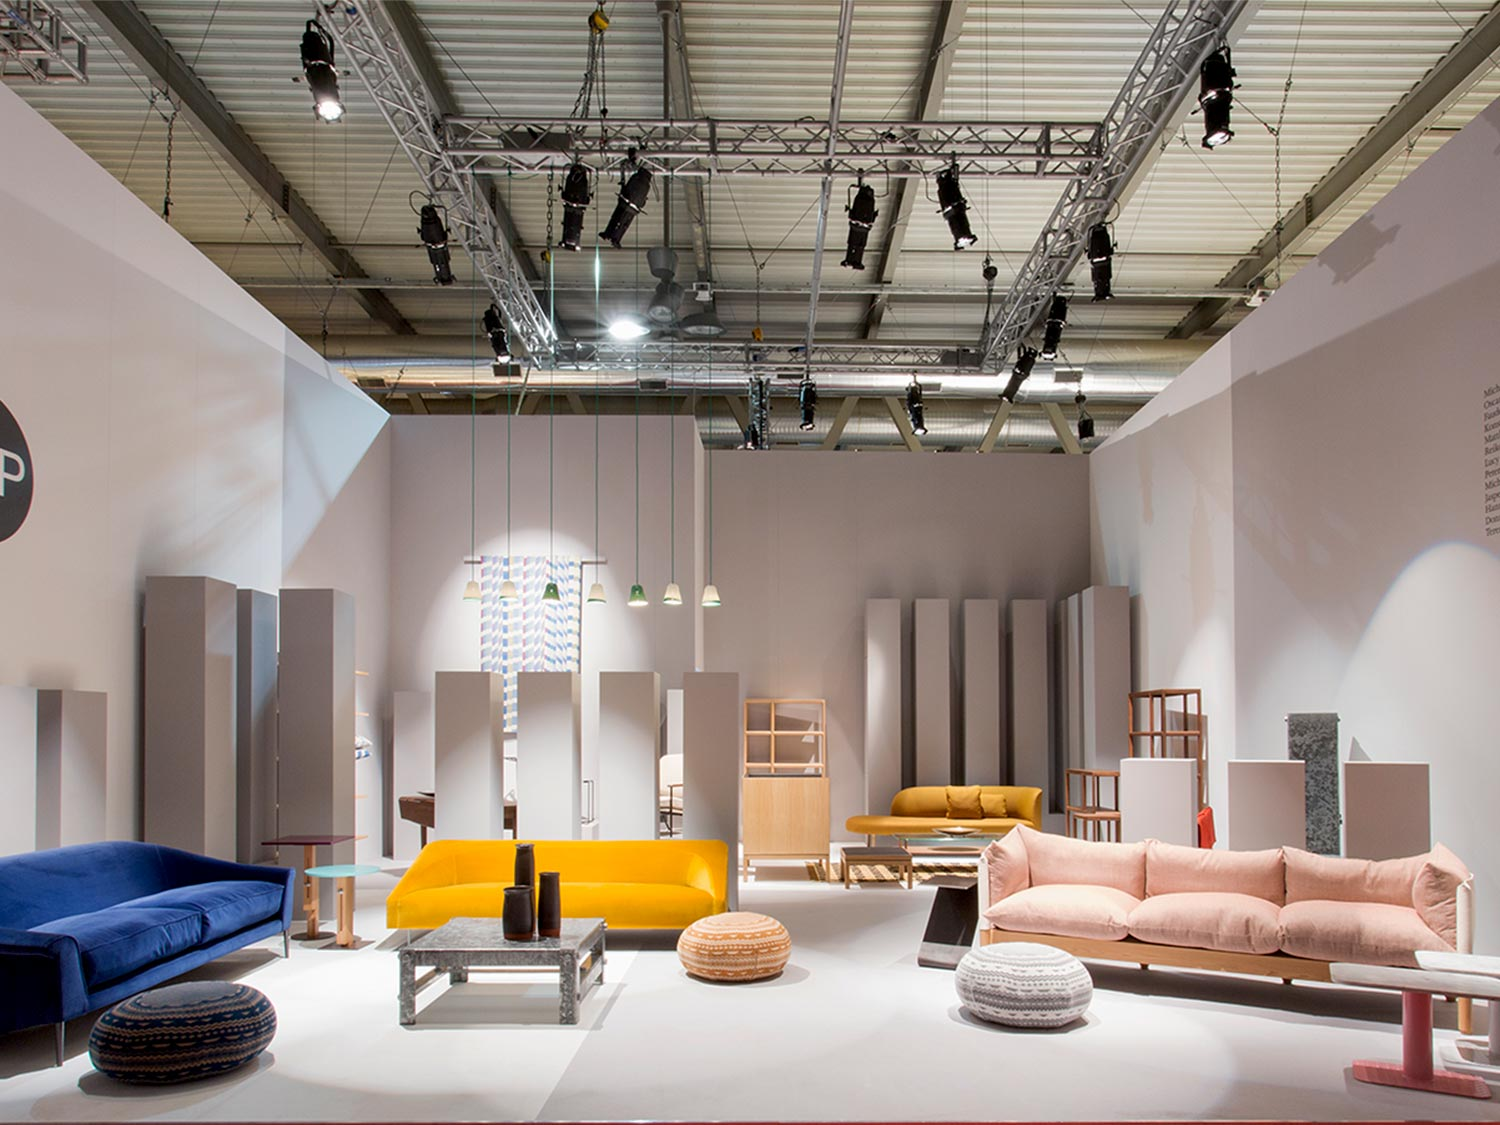 Salone del mobile milano 2016 scp life for Fiera mobile milano 2016